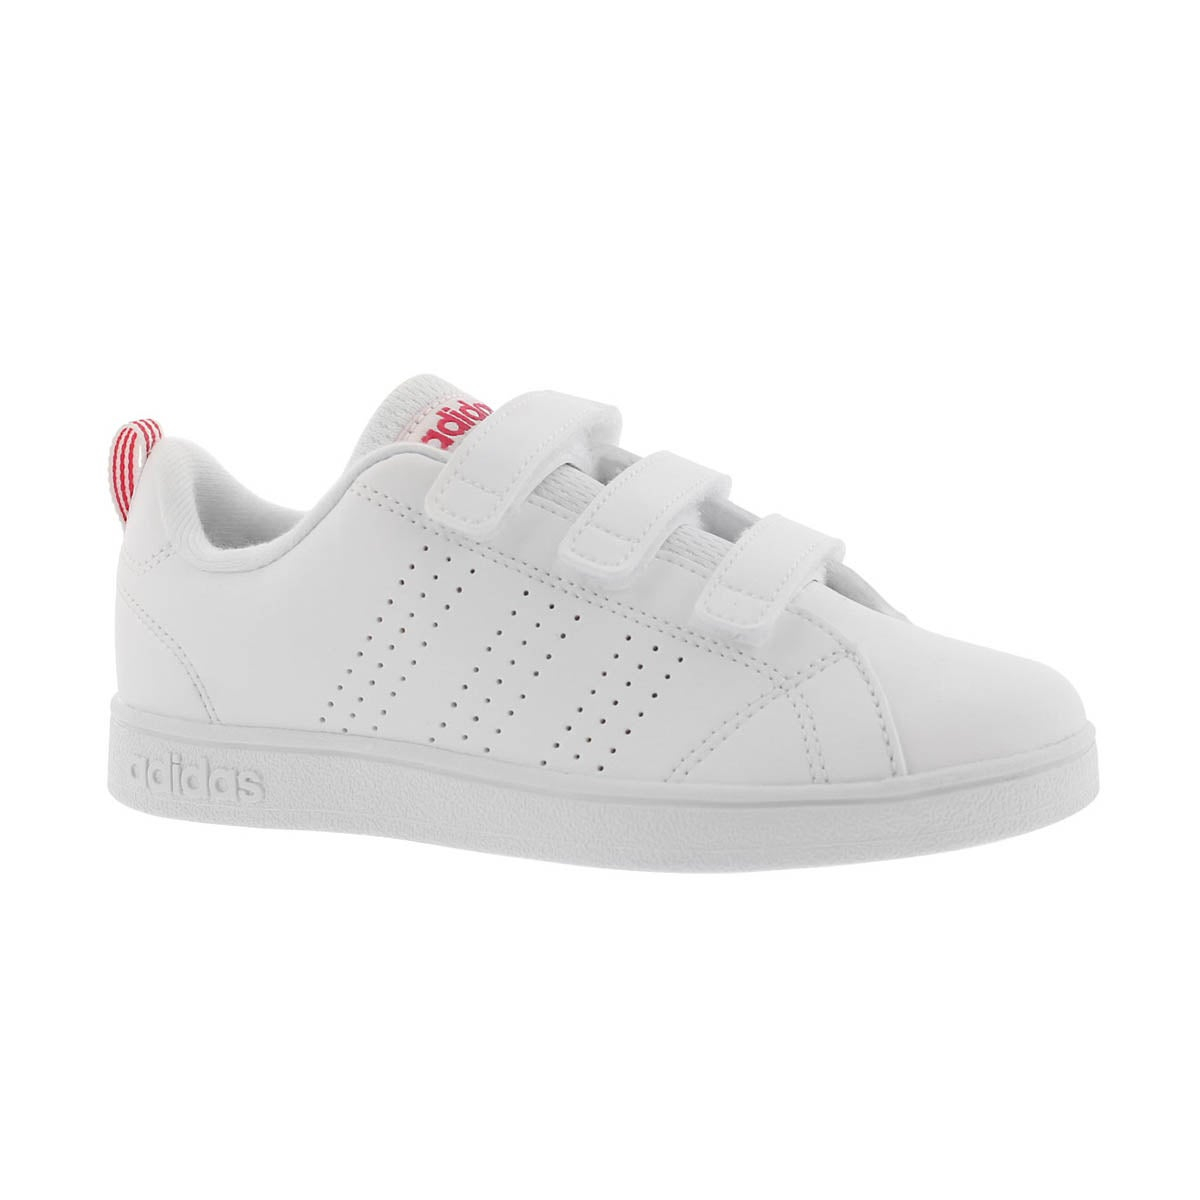 Girls' ADVANTAGE CLEAN CMF white/pink sneakers